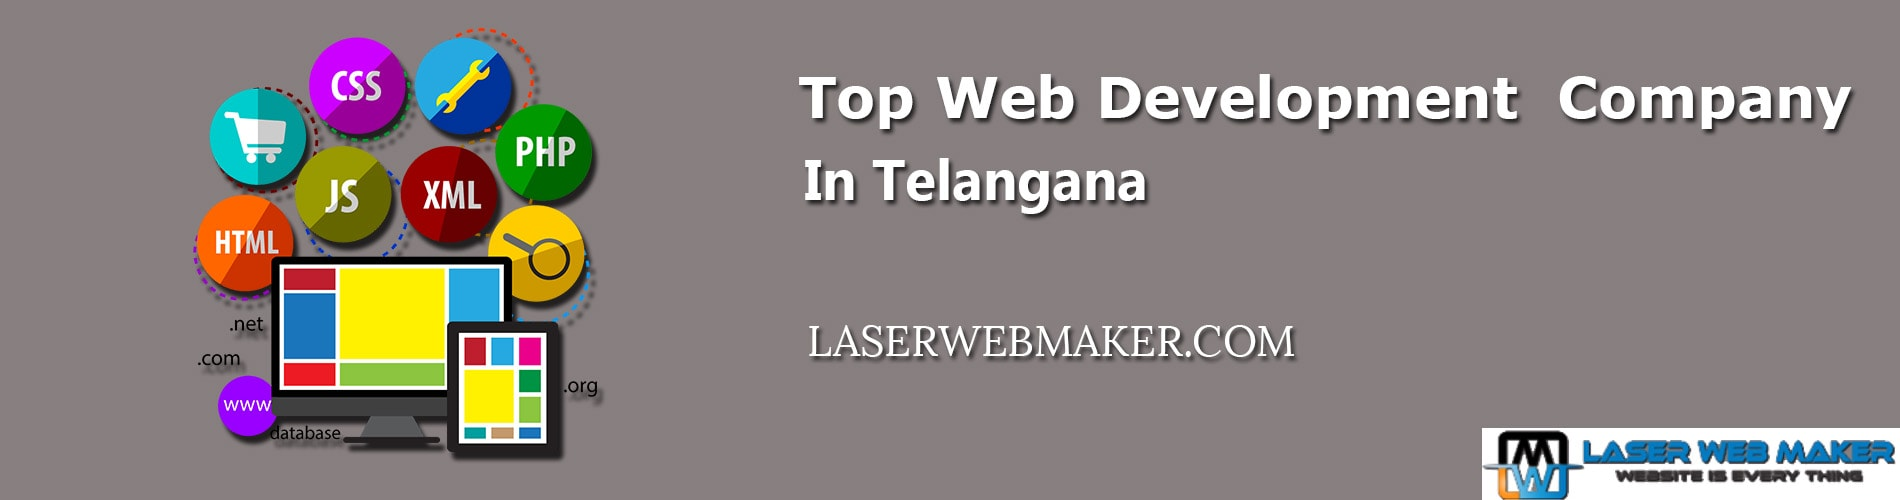 Top Web Development Company In Telangana